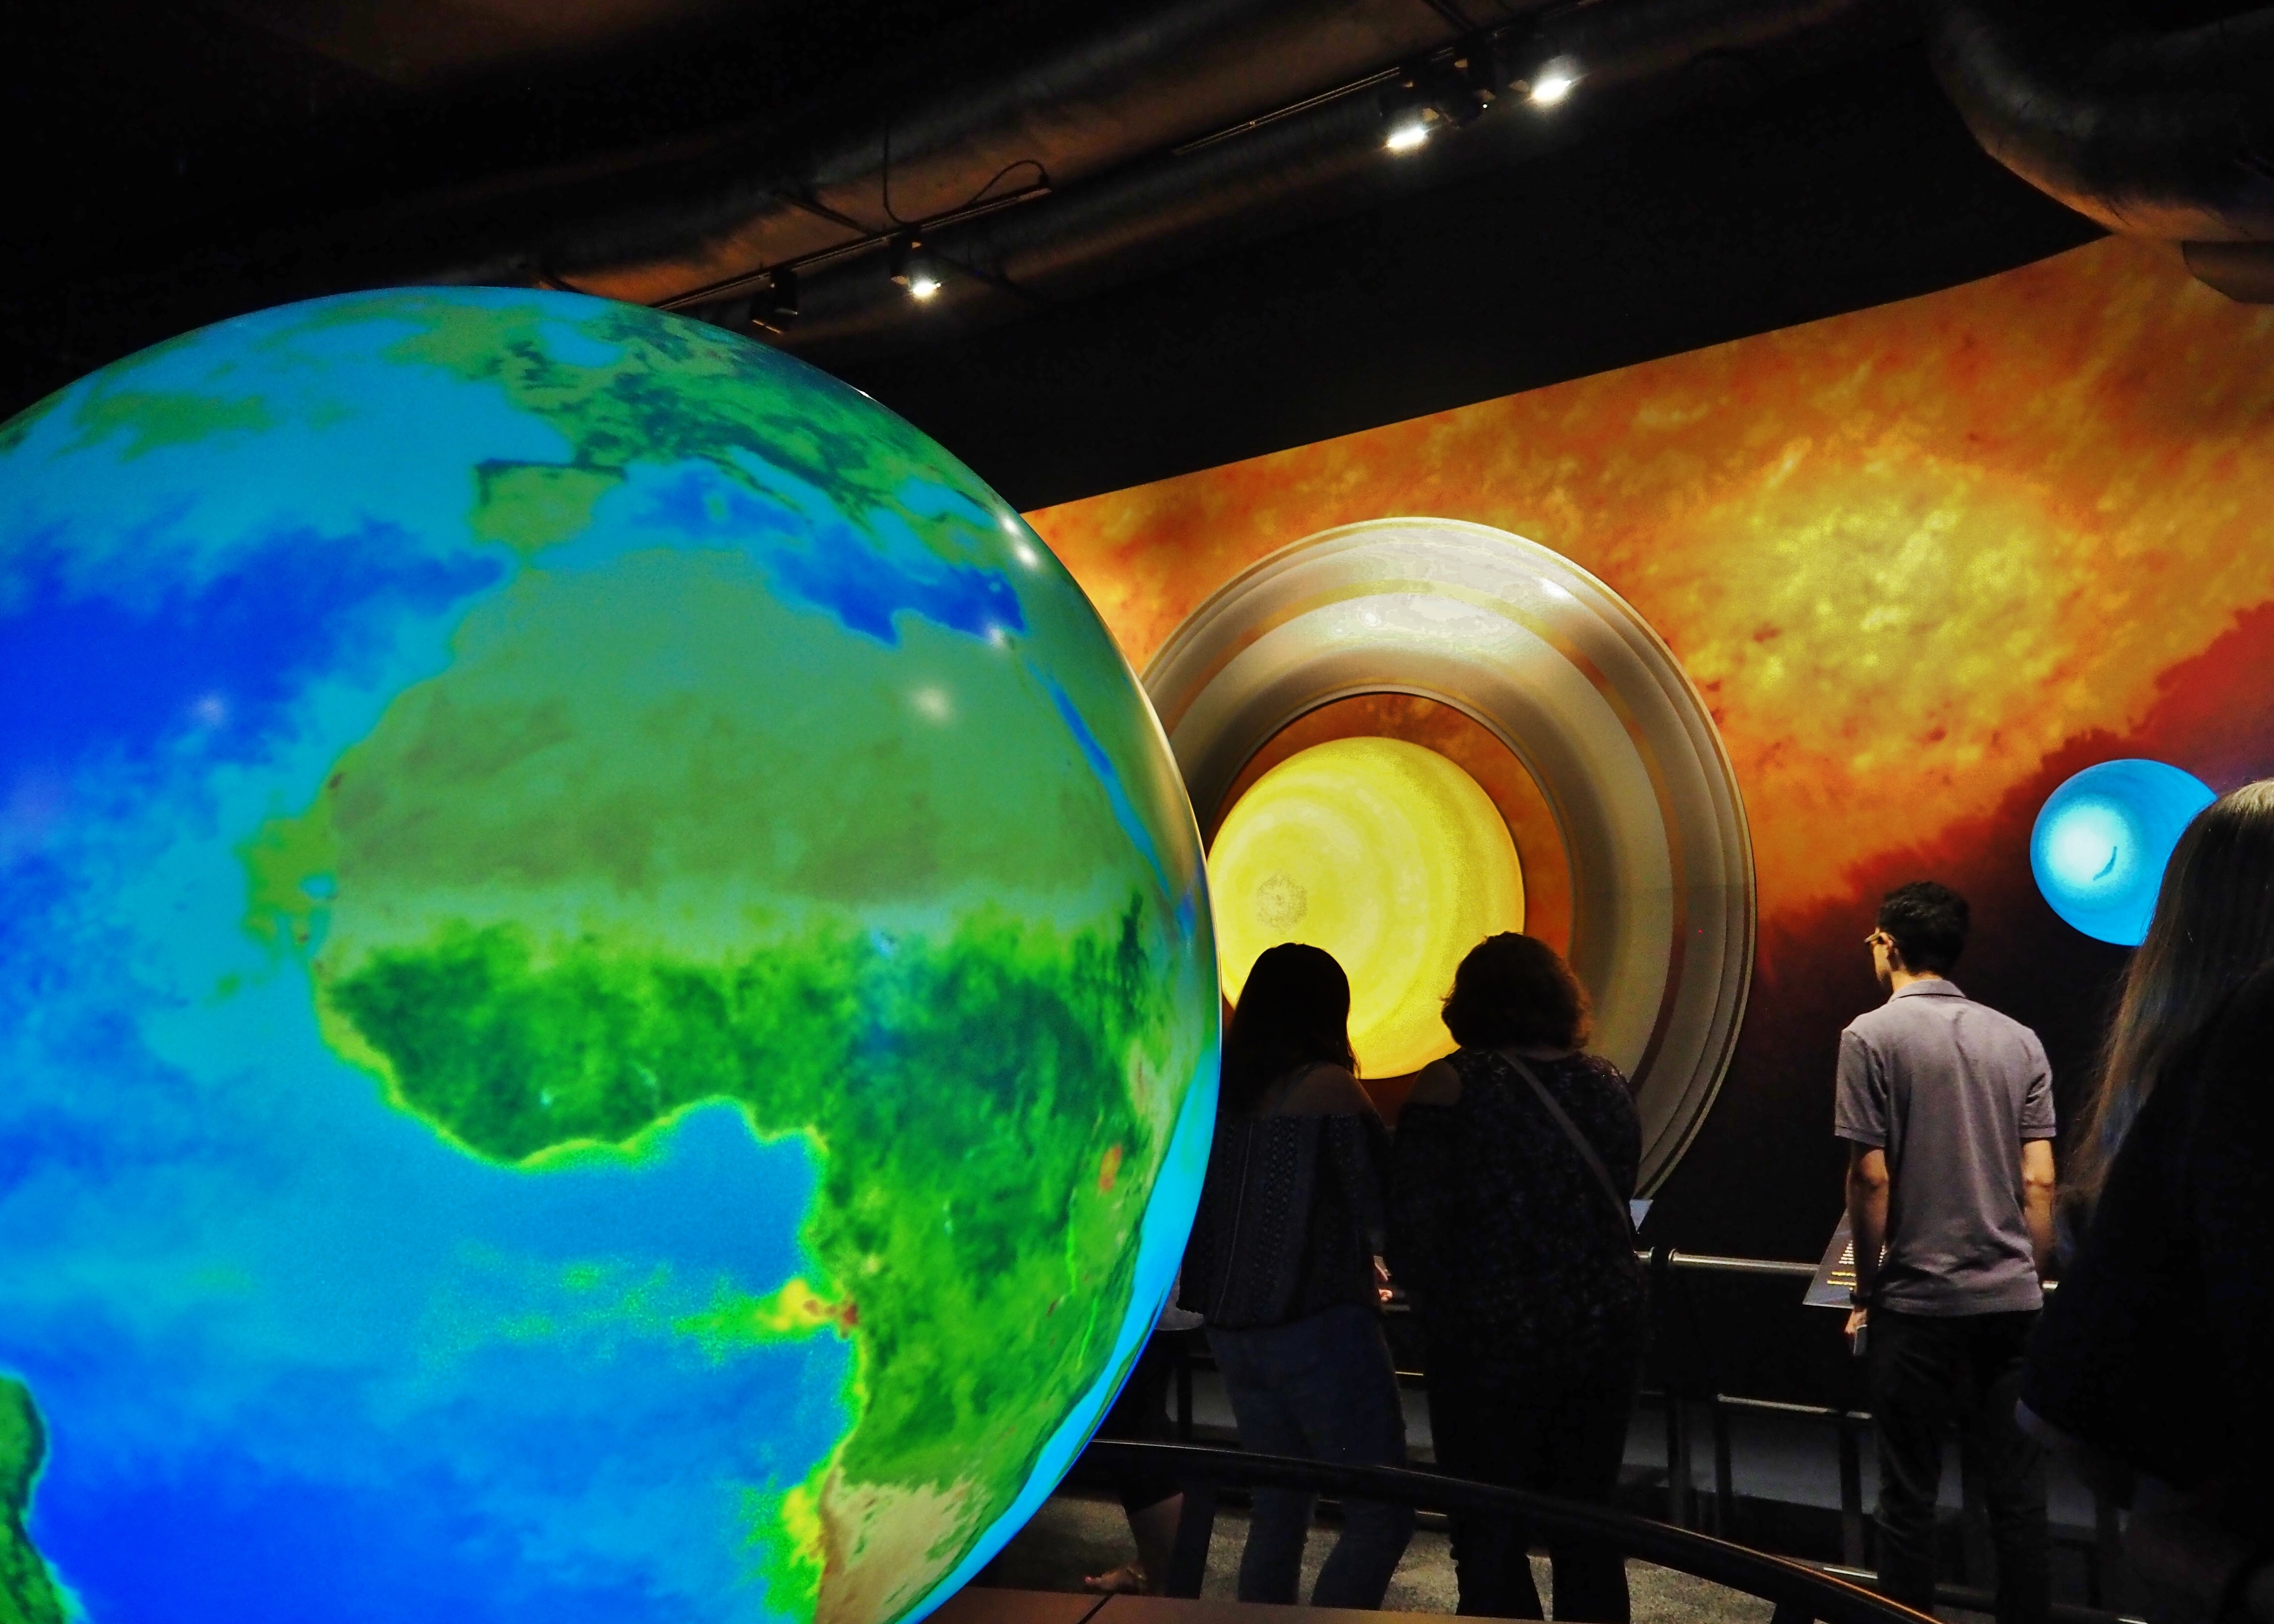 Sneak Peek! New Space Gallery & Star Theater at the Edmonton Science Centre